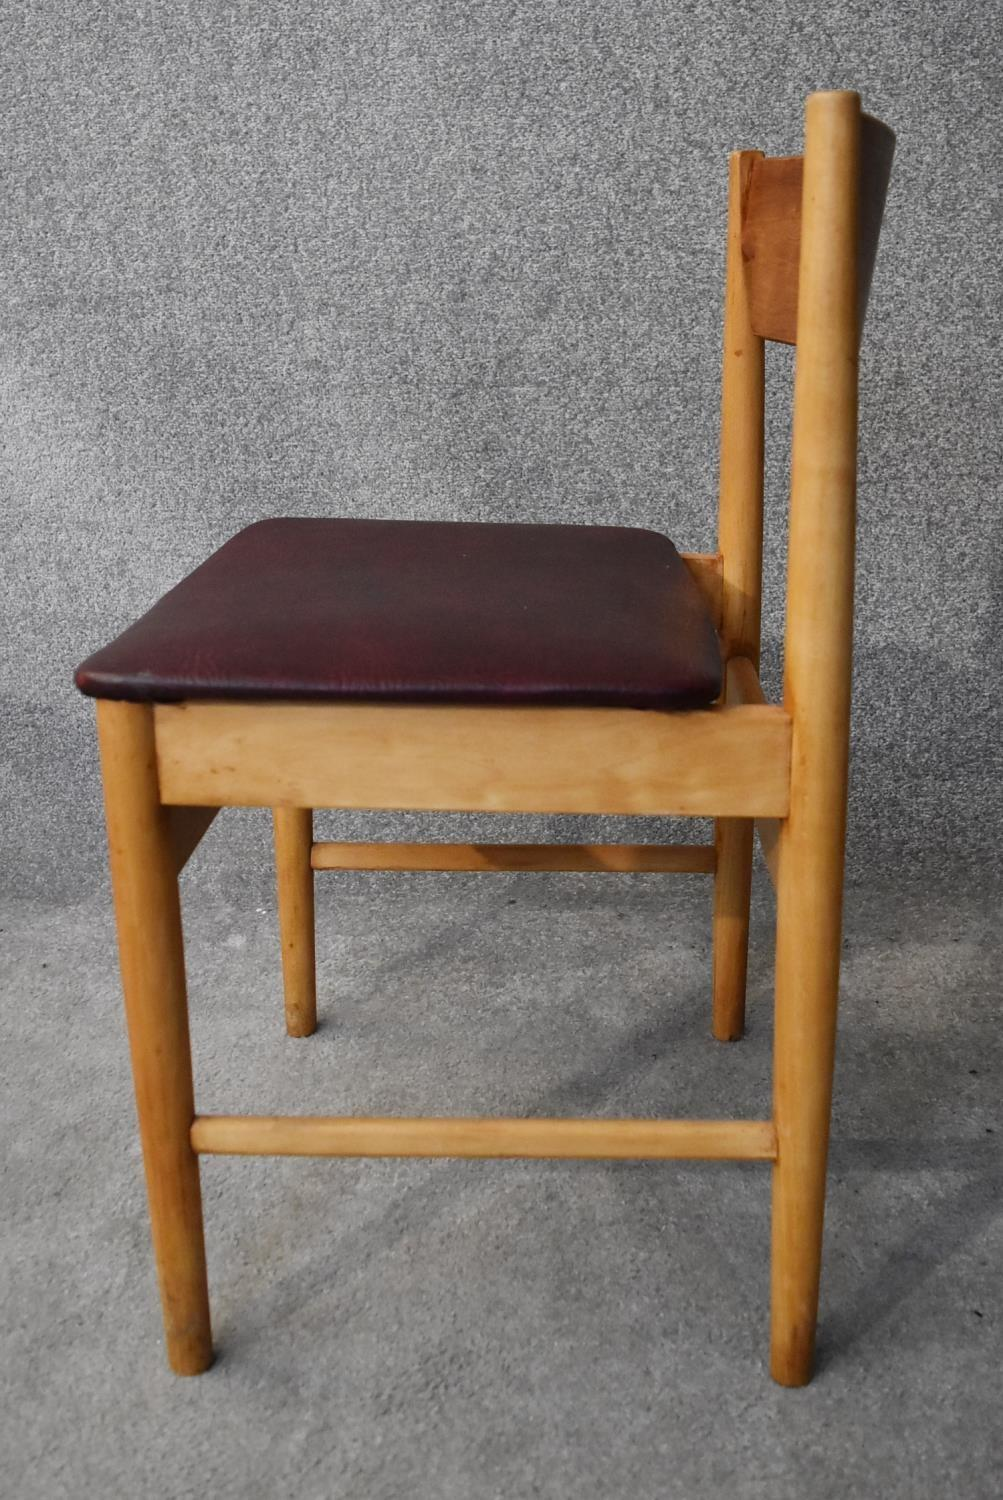 A set of four mid 20th century teak dining chairs in faux grained leather burgundy upholstery H. - Image 2 of 4